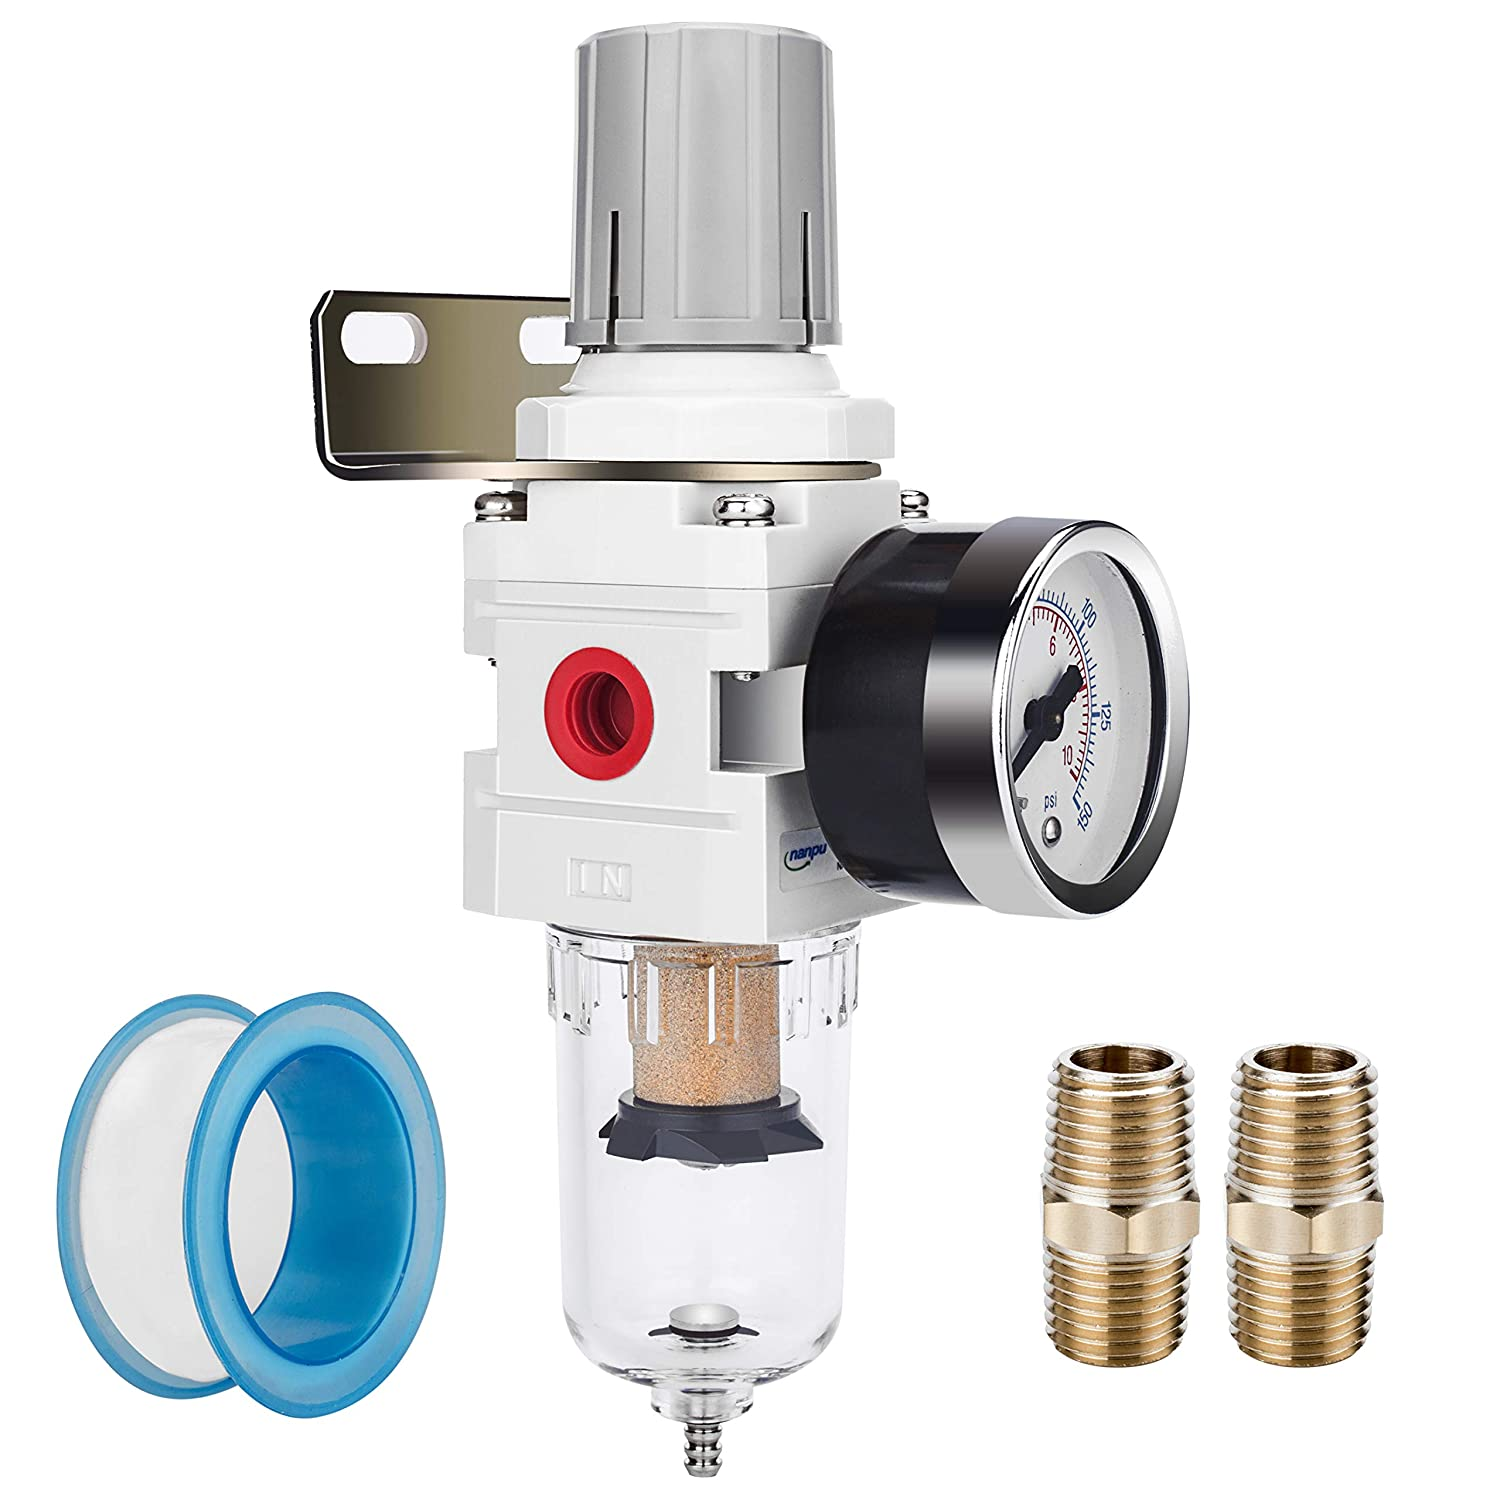 "NANPU 1/4"" NPT Compressed Air Filter Regulator Combo Piggyback, 5 Micron Element, Poly Bowl, Semi-Auto Drain, Bracket, 0-150 psi Gauge (AW2000-02)"